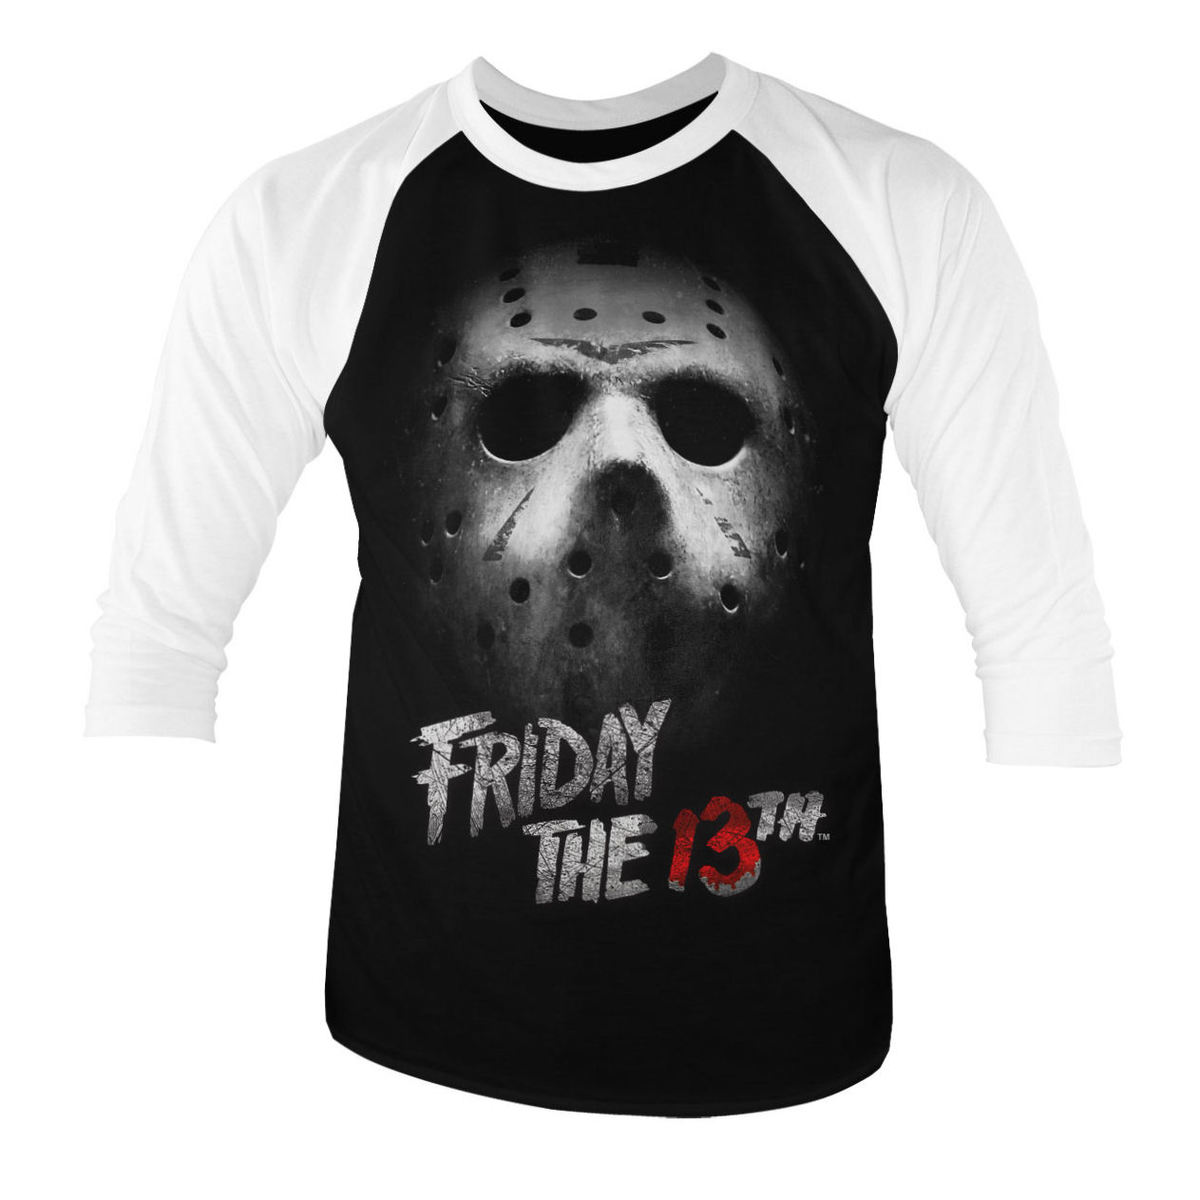 HYBRIS Friday the 13th White černá